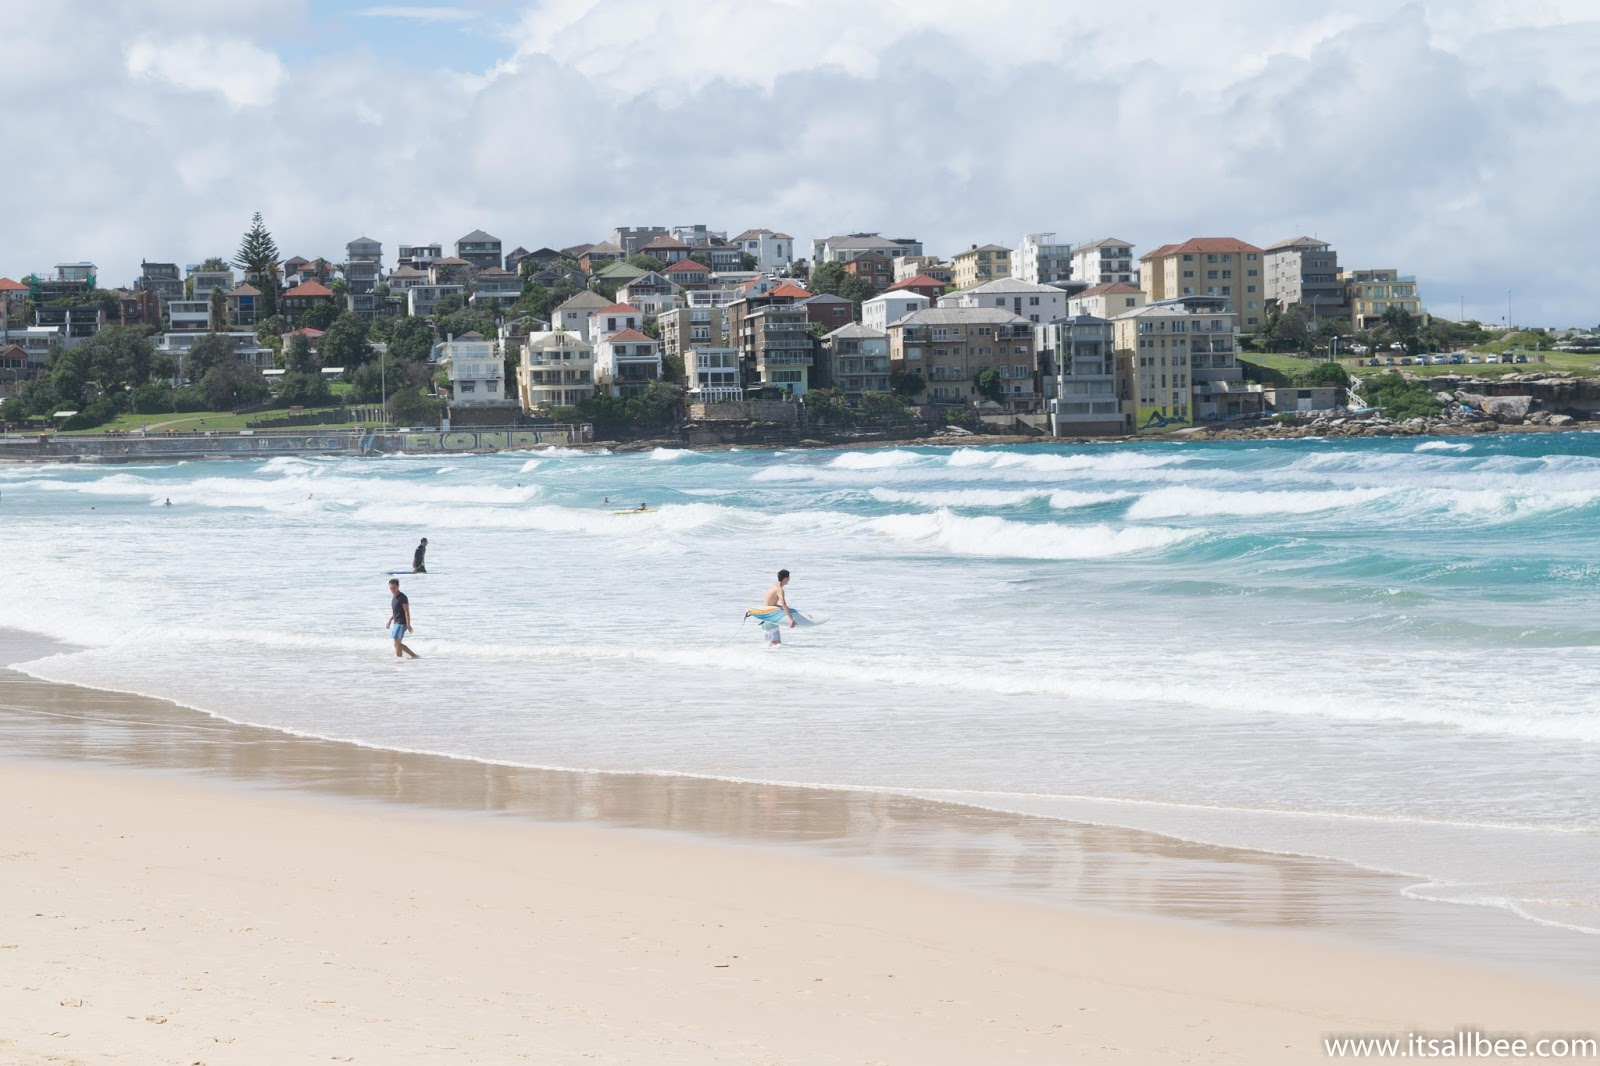 Sydney Beaches | bondi coogee walk | bondi icebergs pool | bondi beach photos | bondi beach walk | bondi beach from sydney